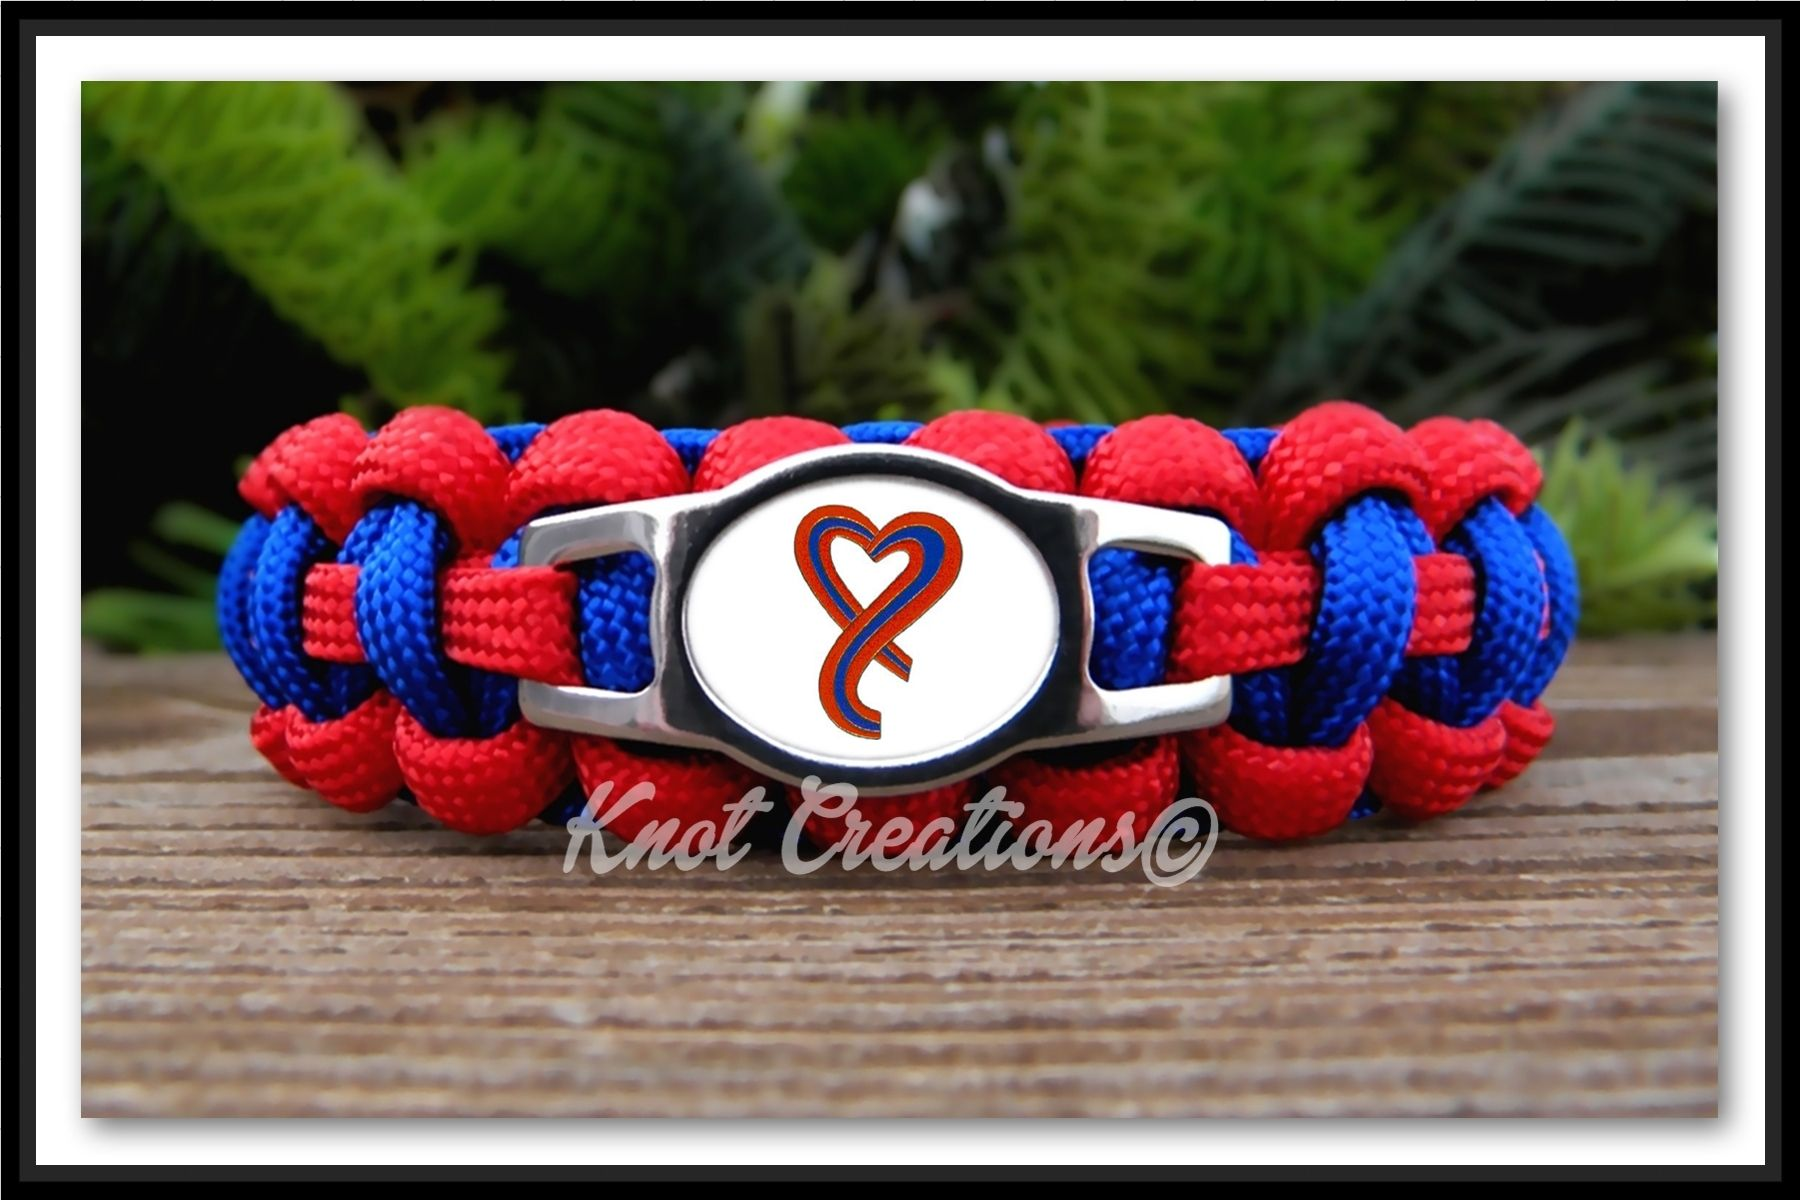 Chd Awareness Paracord Bracelet Show Support And Raise For Con Heart Defect